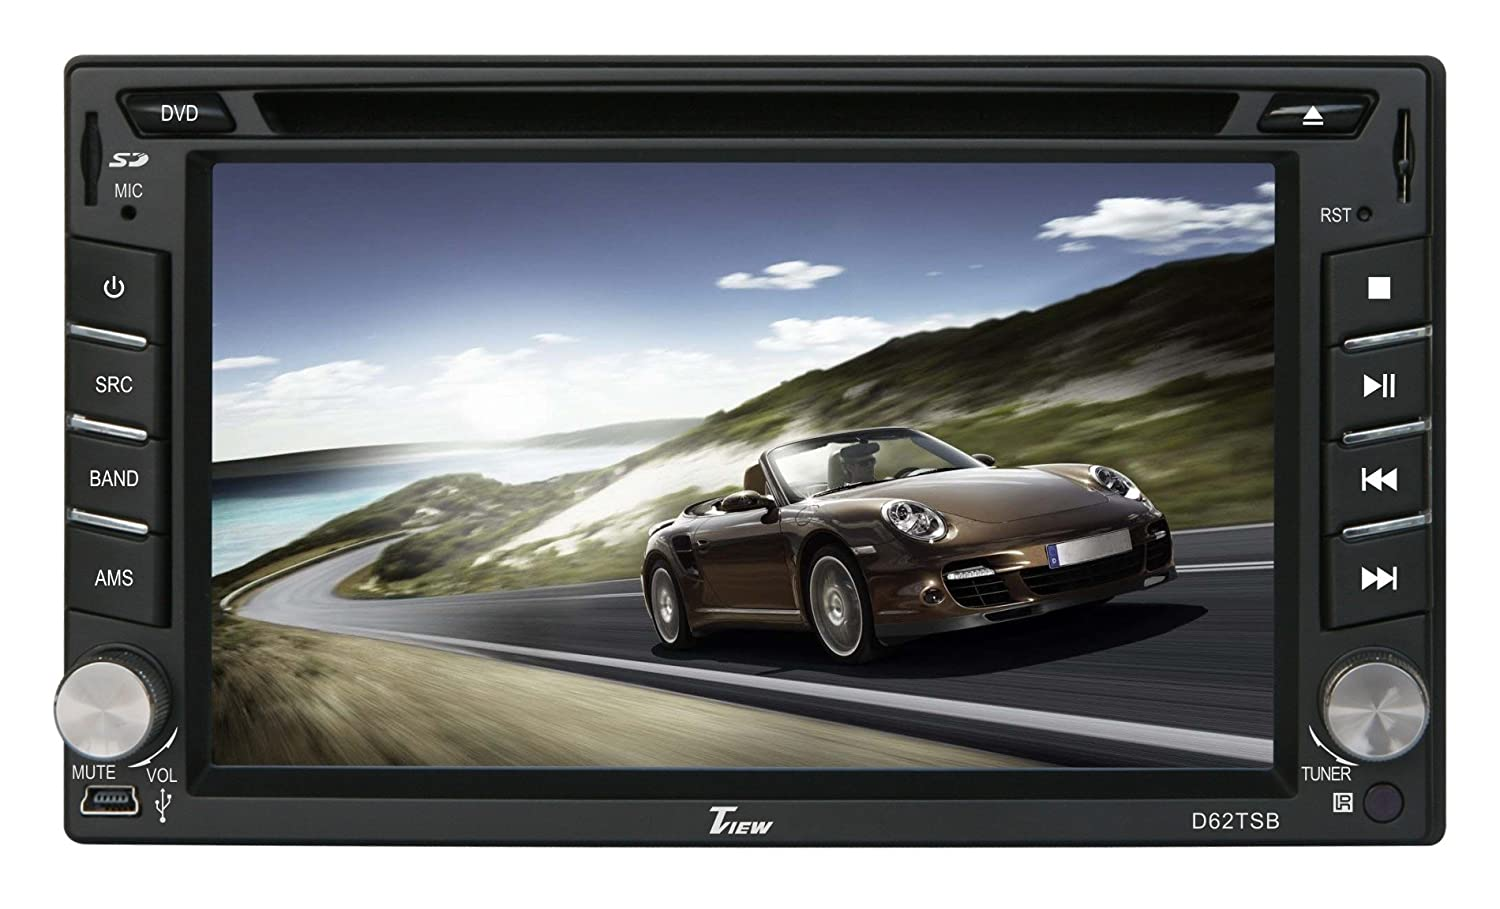 71N8 eVkMJL._SL1500_ amazon com tview d62tsb 6 2 inch double din touch screen with tview d75tsb wiring harness at gsmportal.co